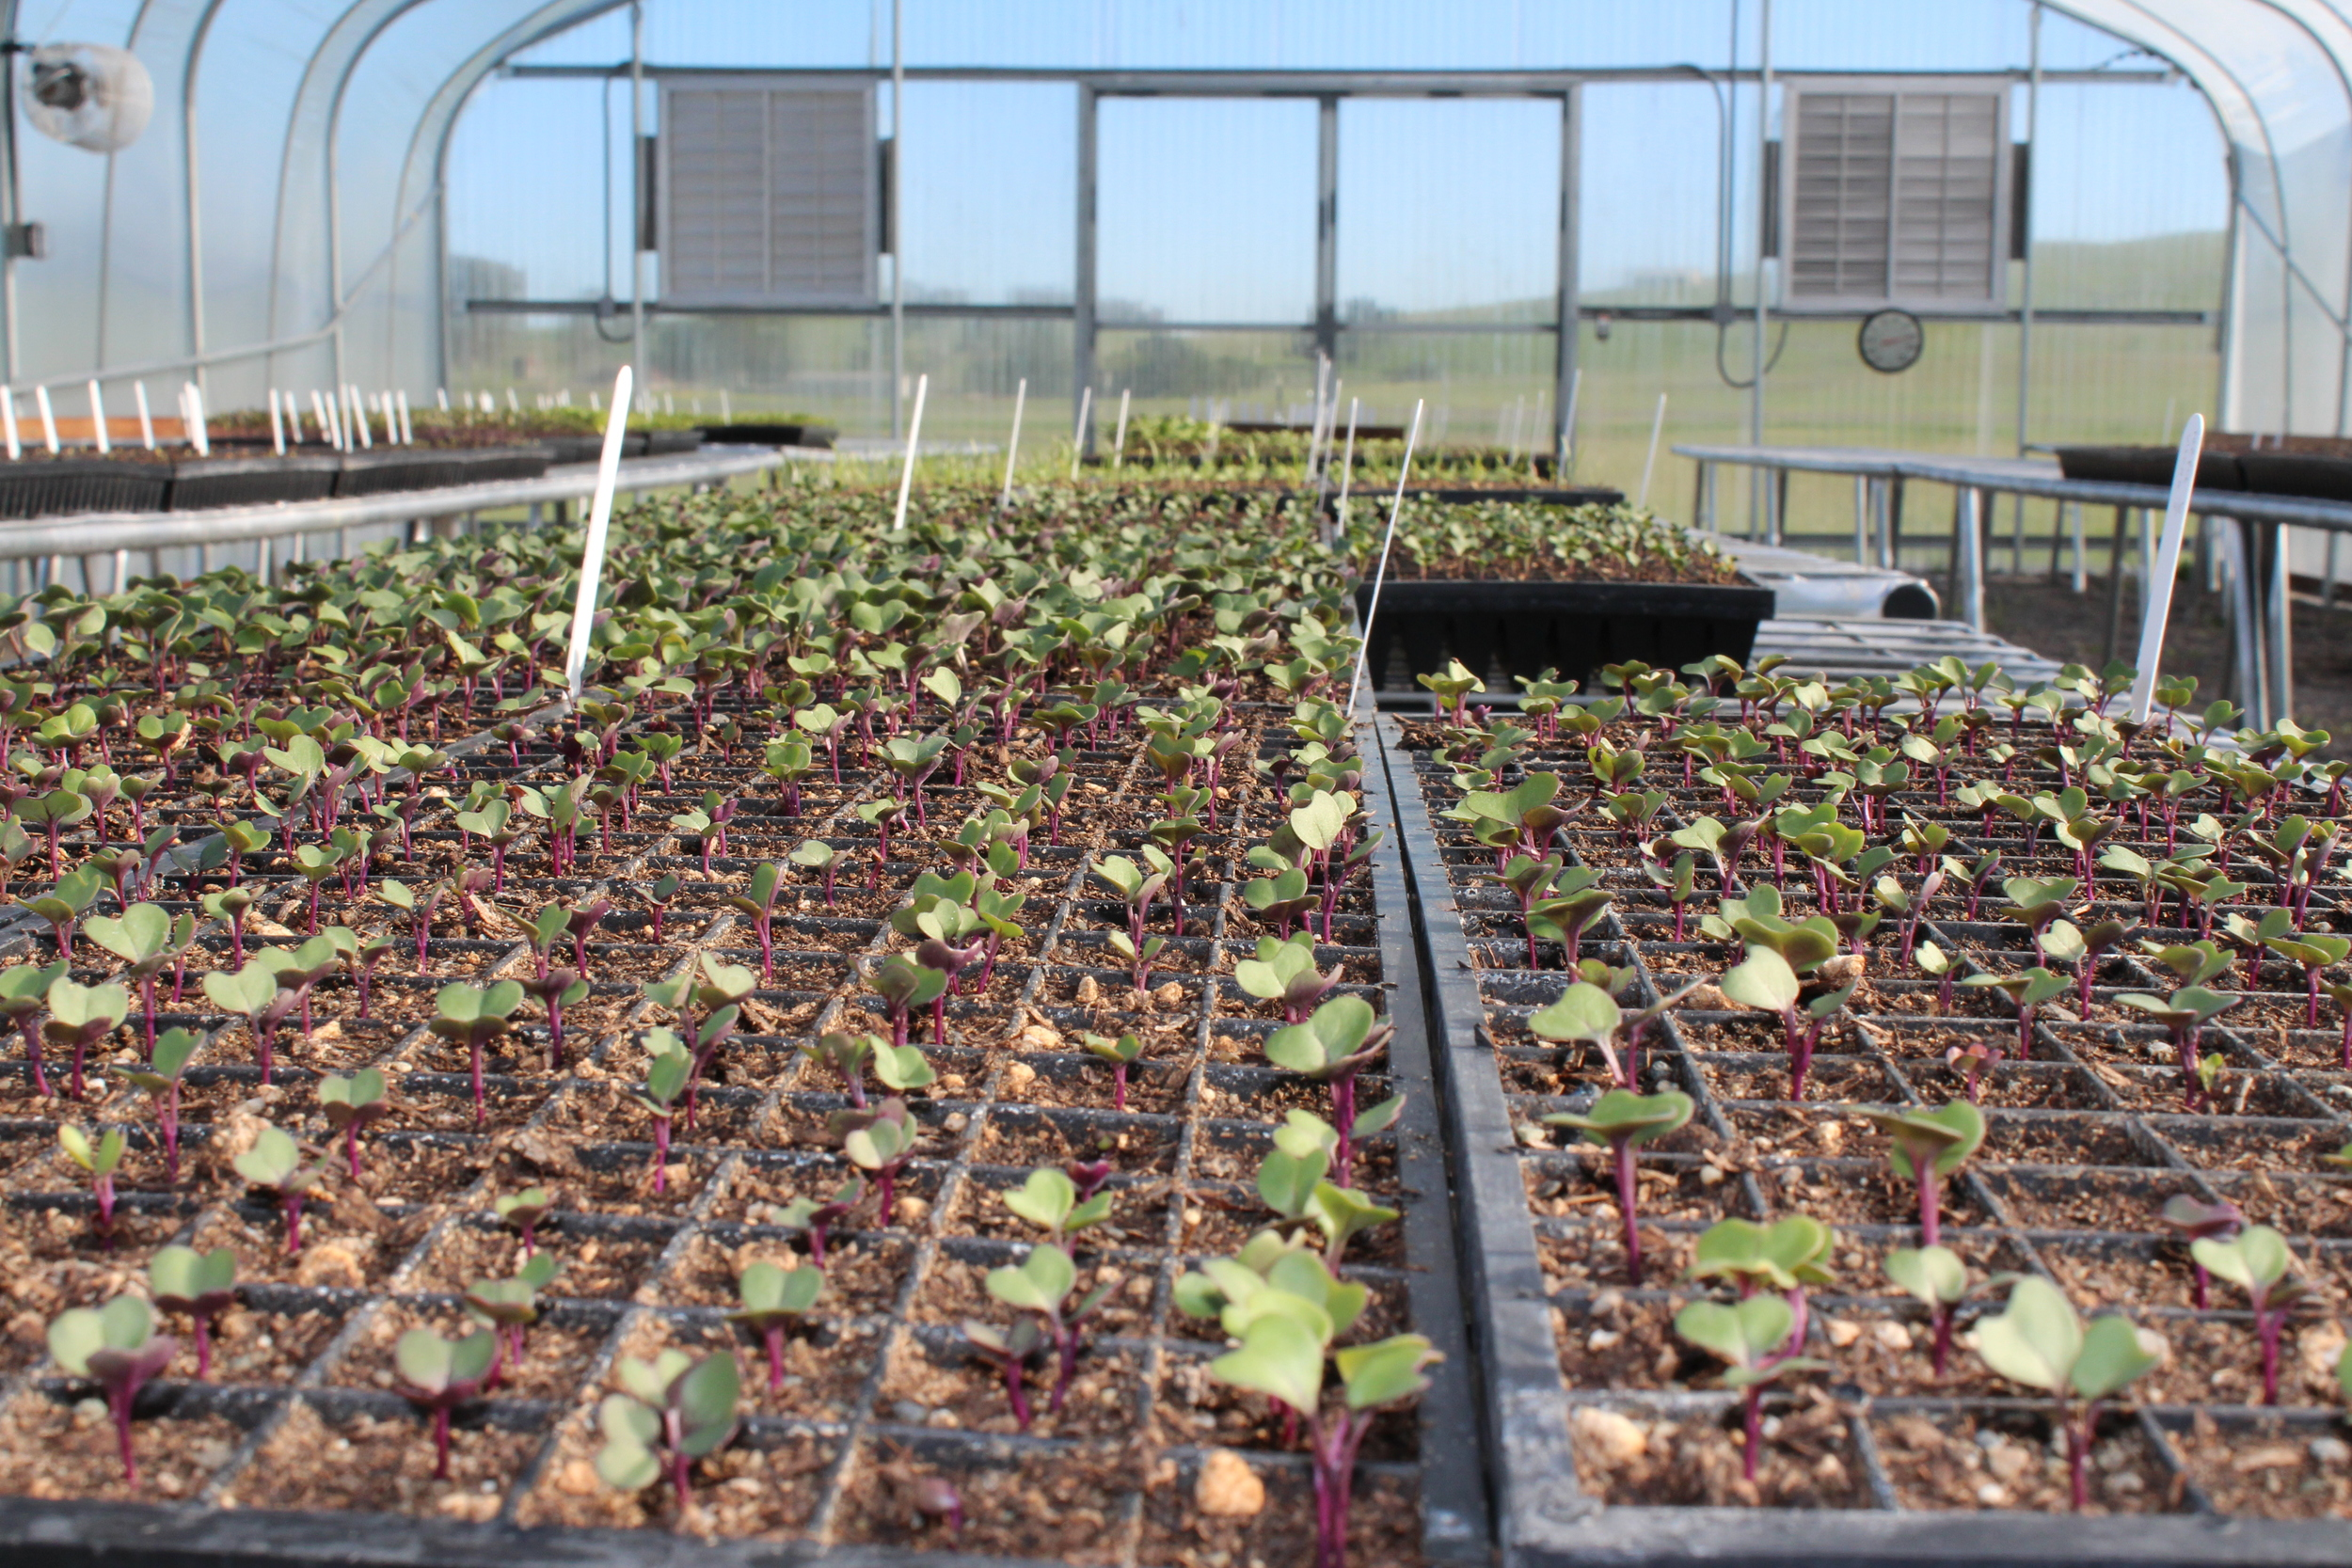 Seedlings in the greenhouse